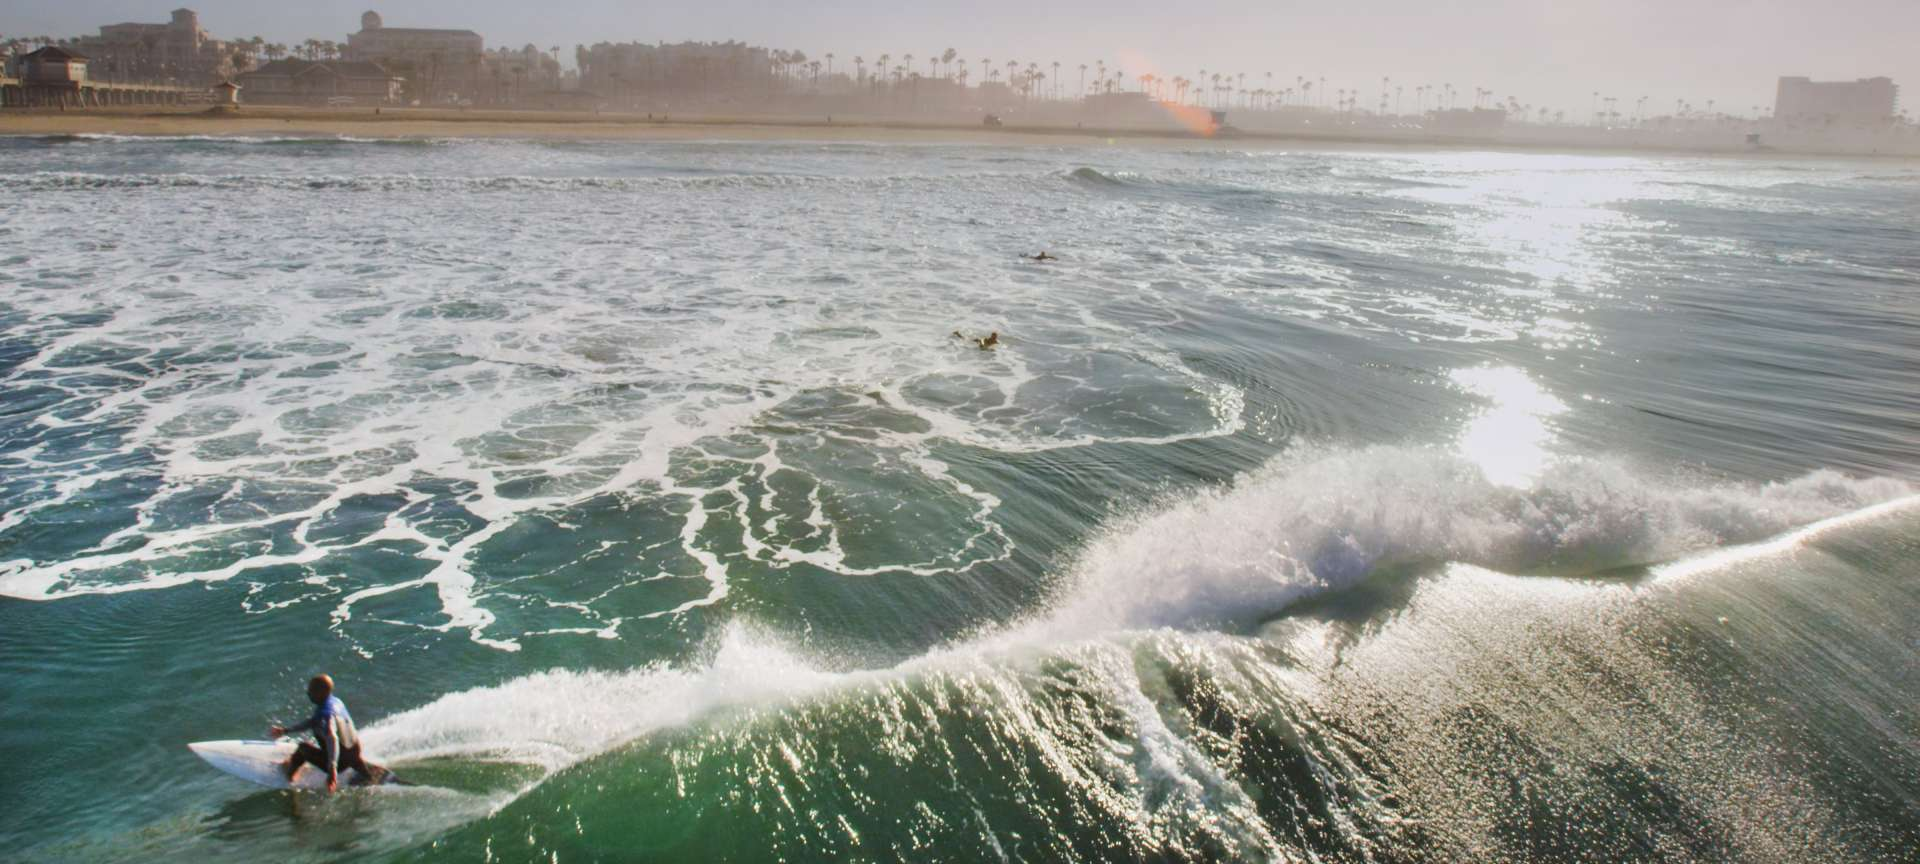 Huntington Beach Surf Report | Surfing Conditions in